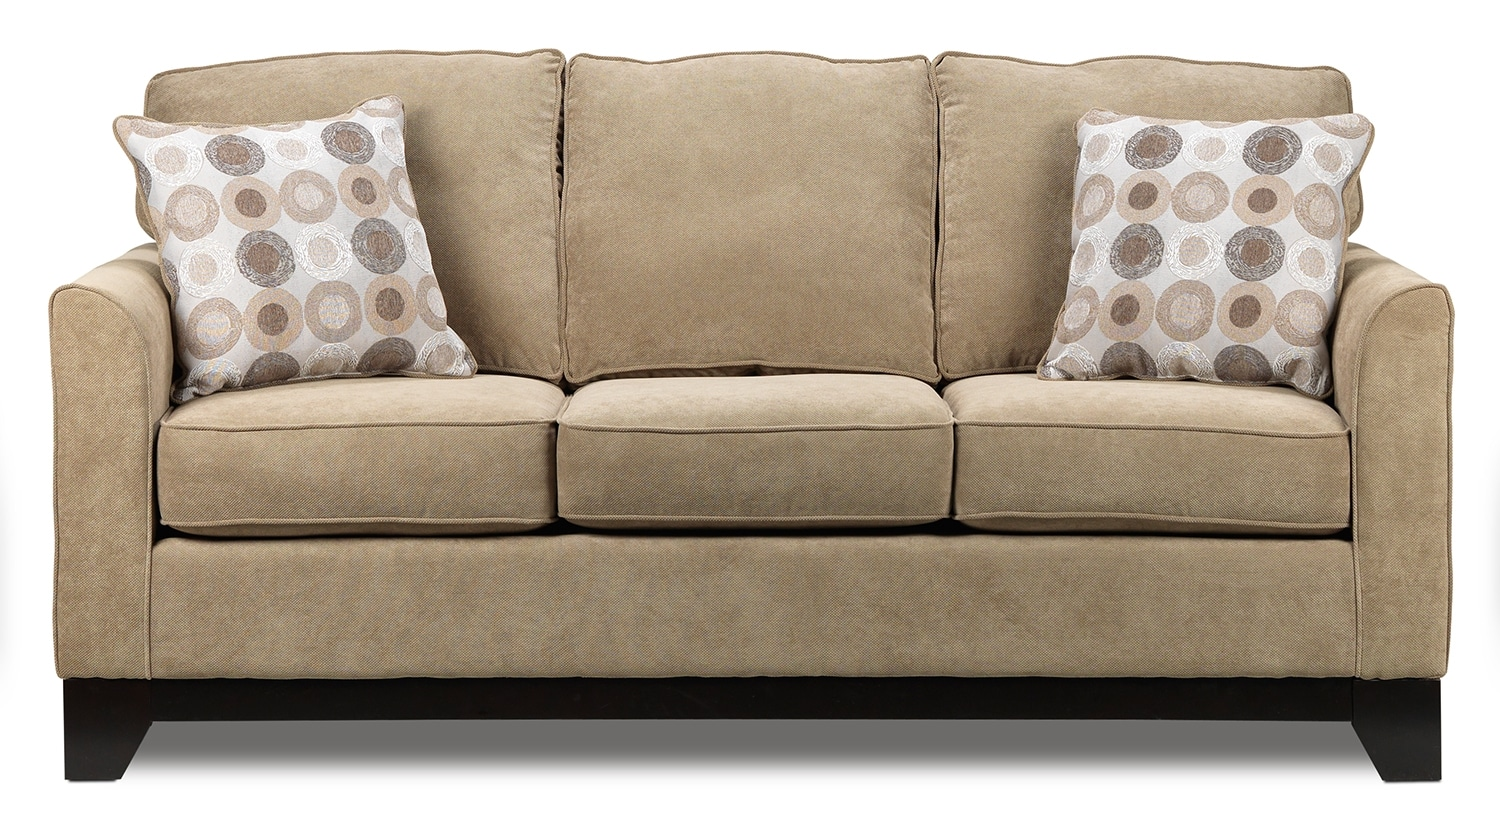 Sand Castle Sofa - Light Brown